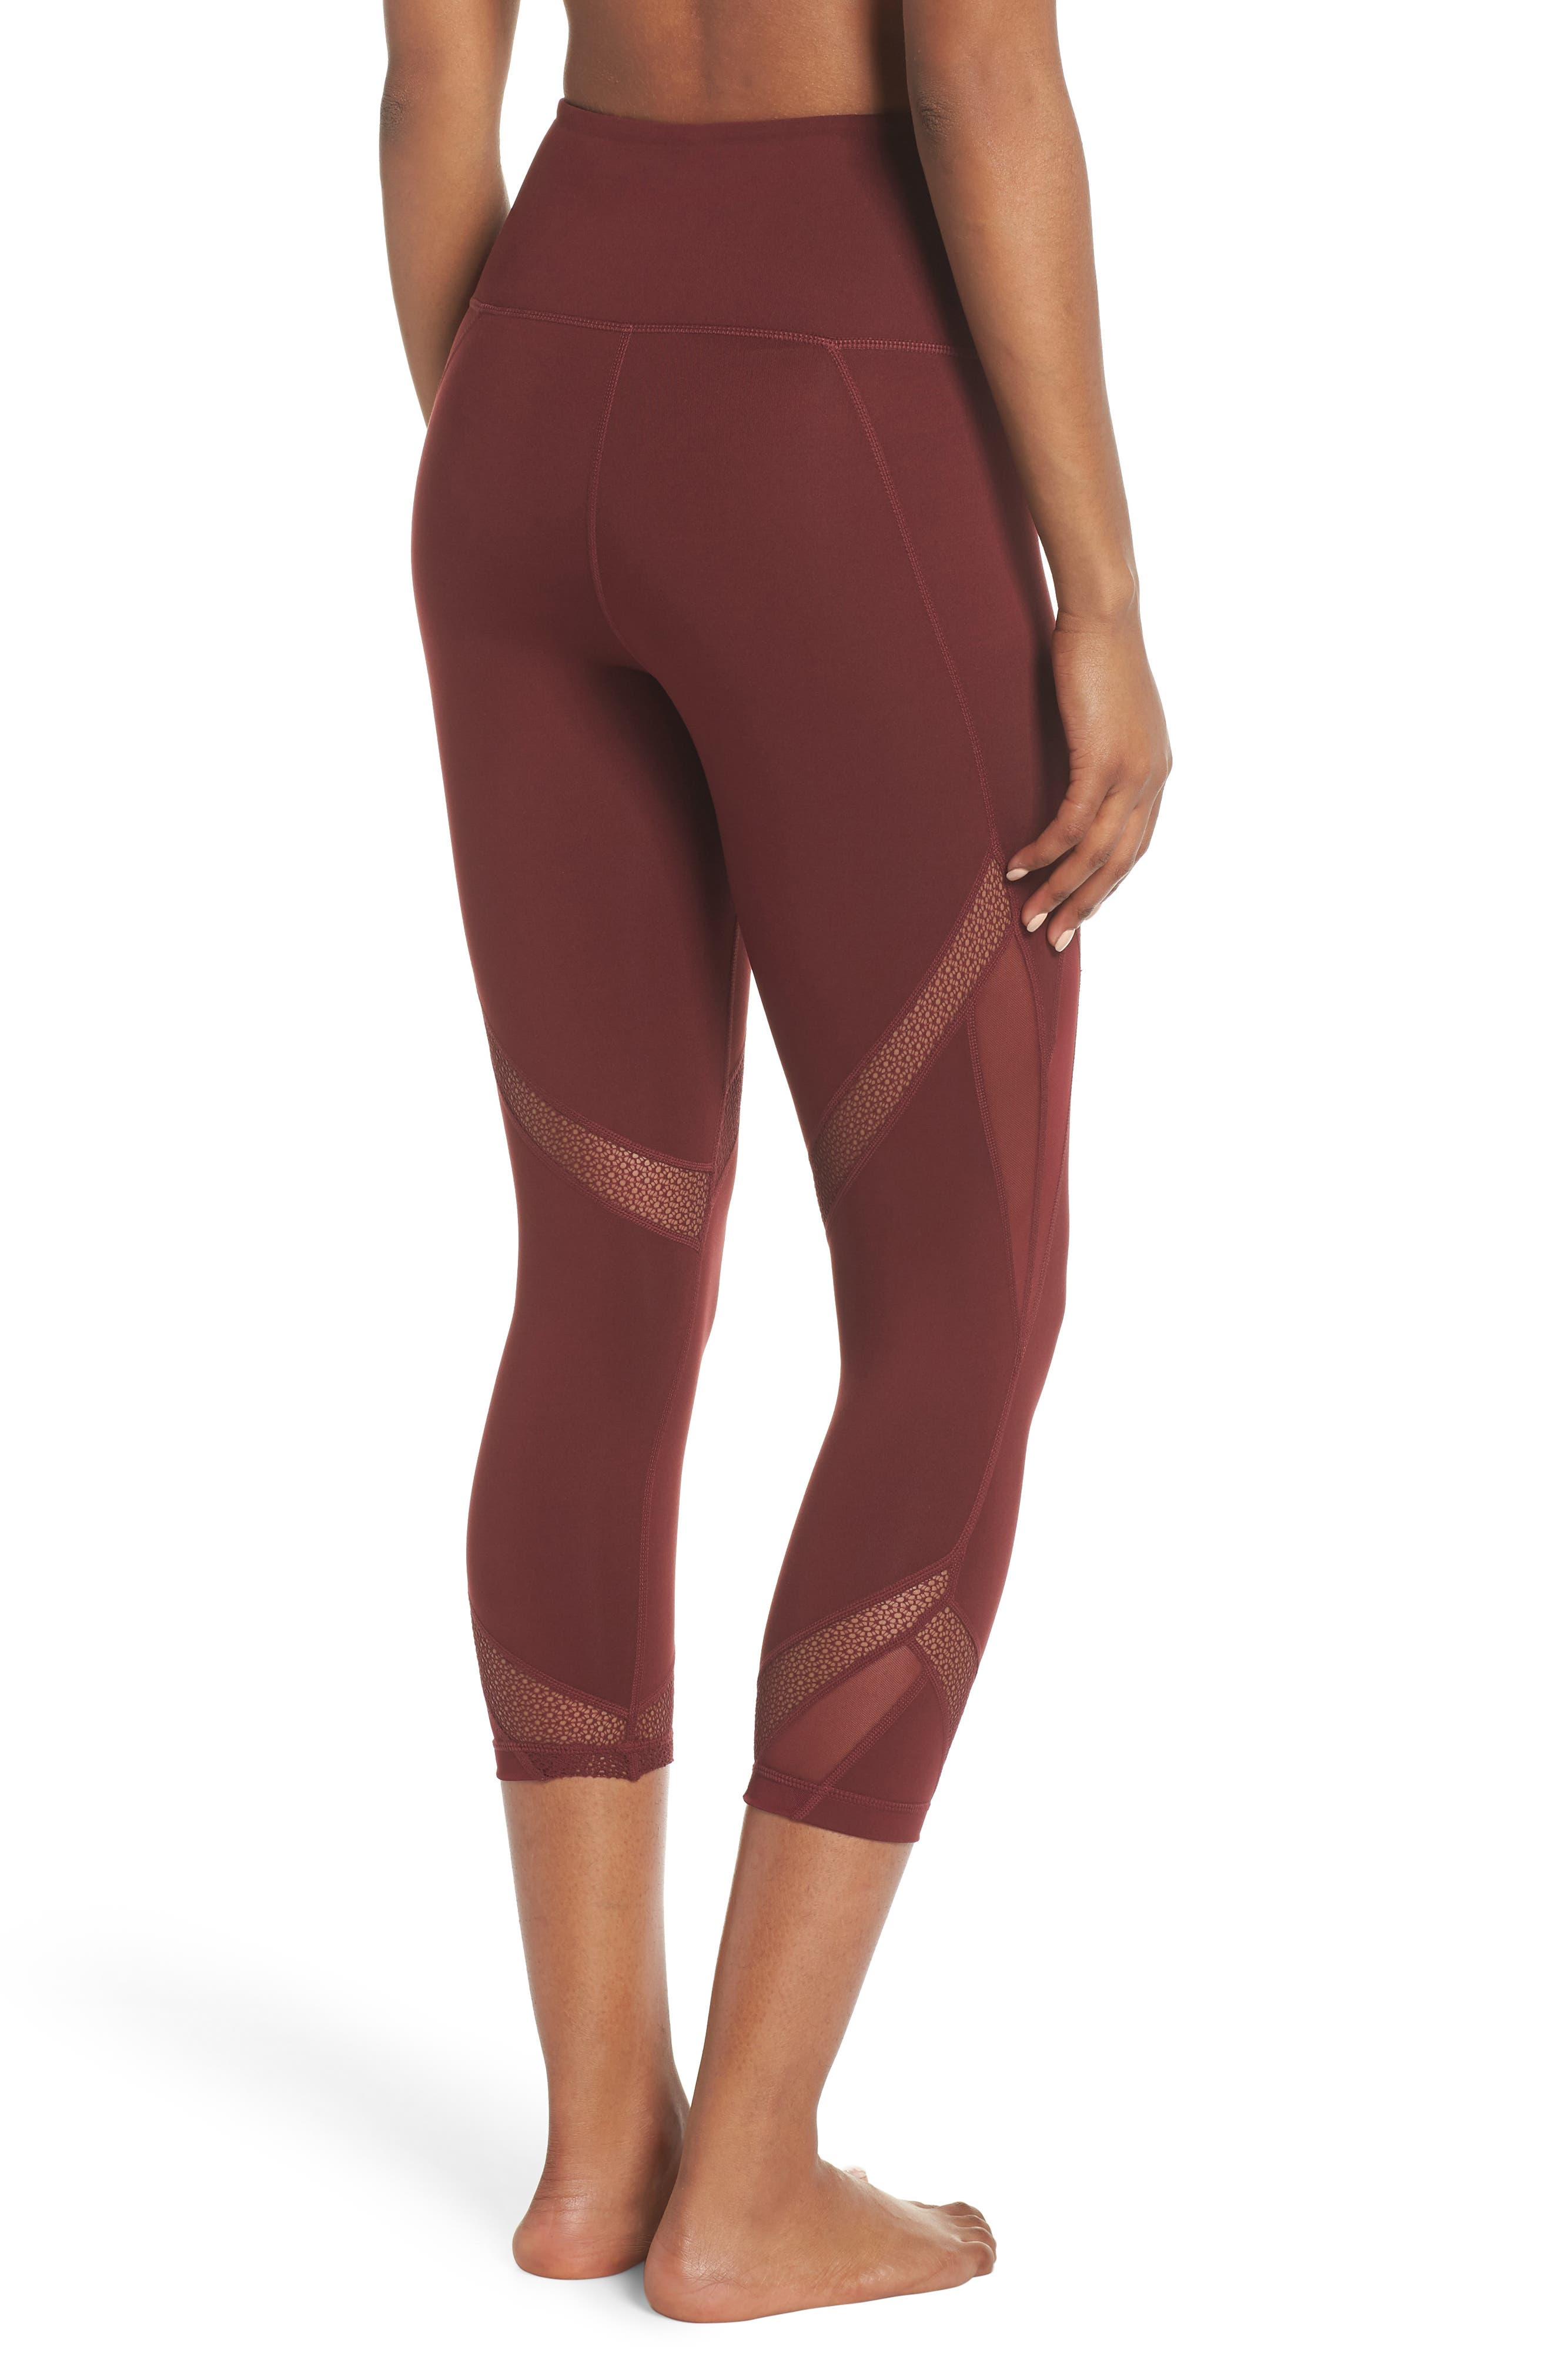 Moroccan High Waist Crop Leggings,                             Alternate thumbnail 2, color,                             RED TANNIN